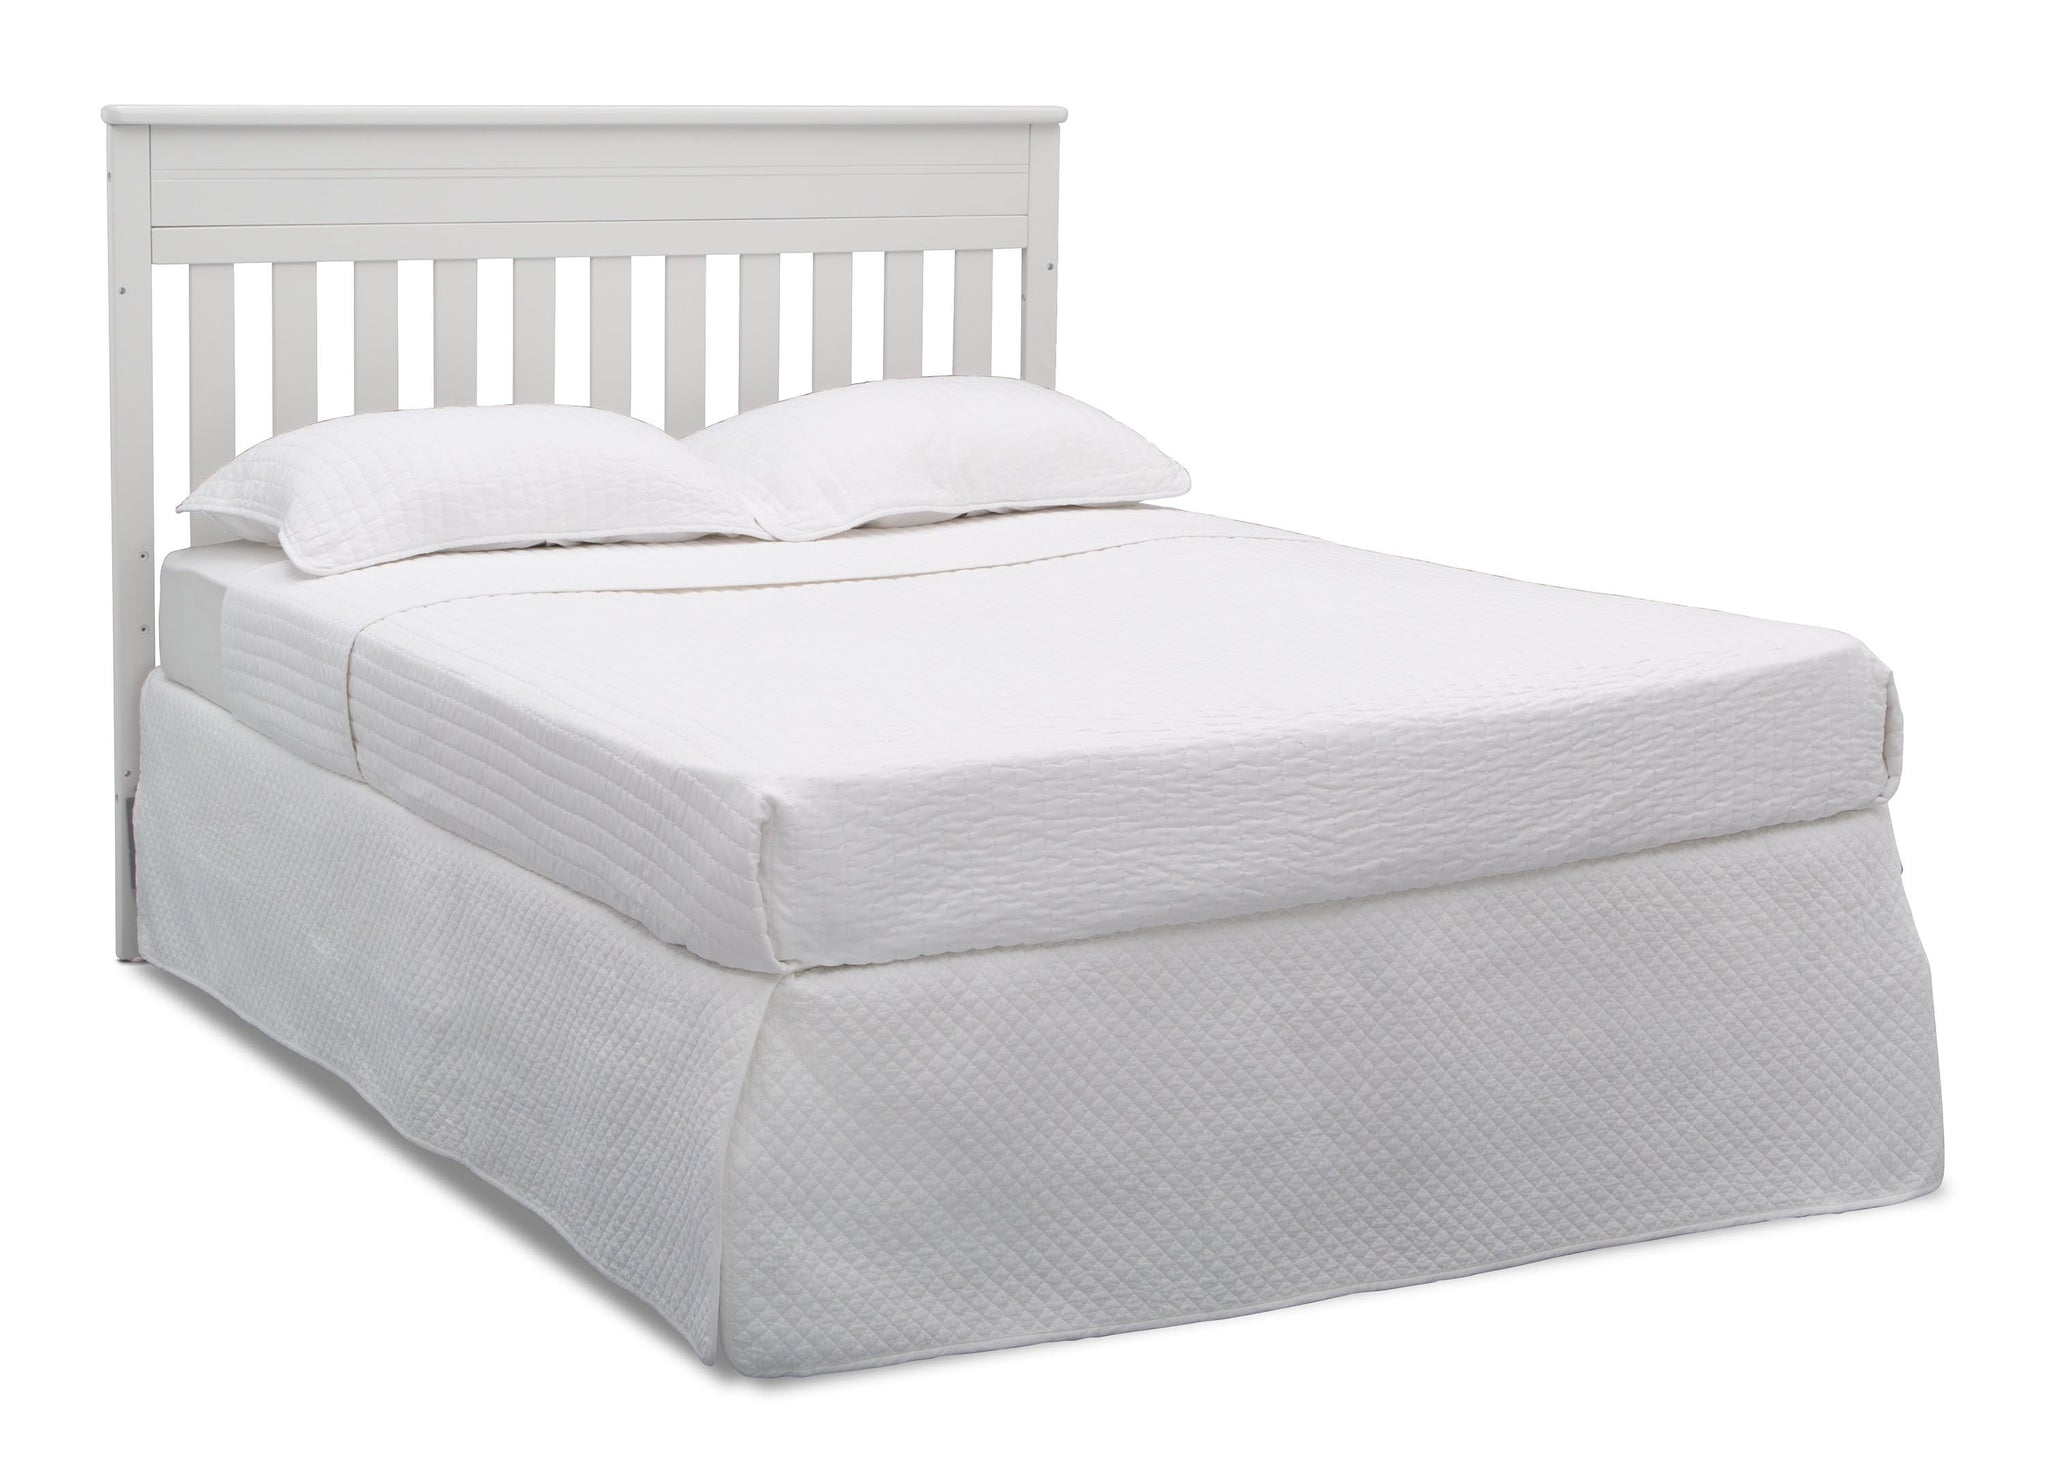 Delta Children Bianca White (130) Presley Convertible Crib N Changer (530260), Full Size Bed, b6b